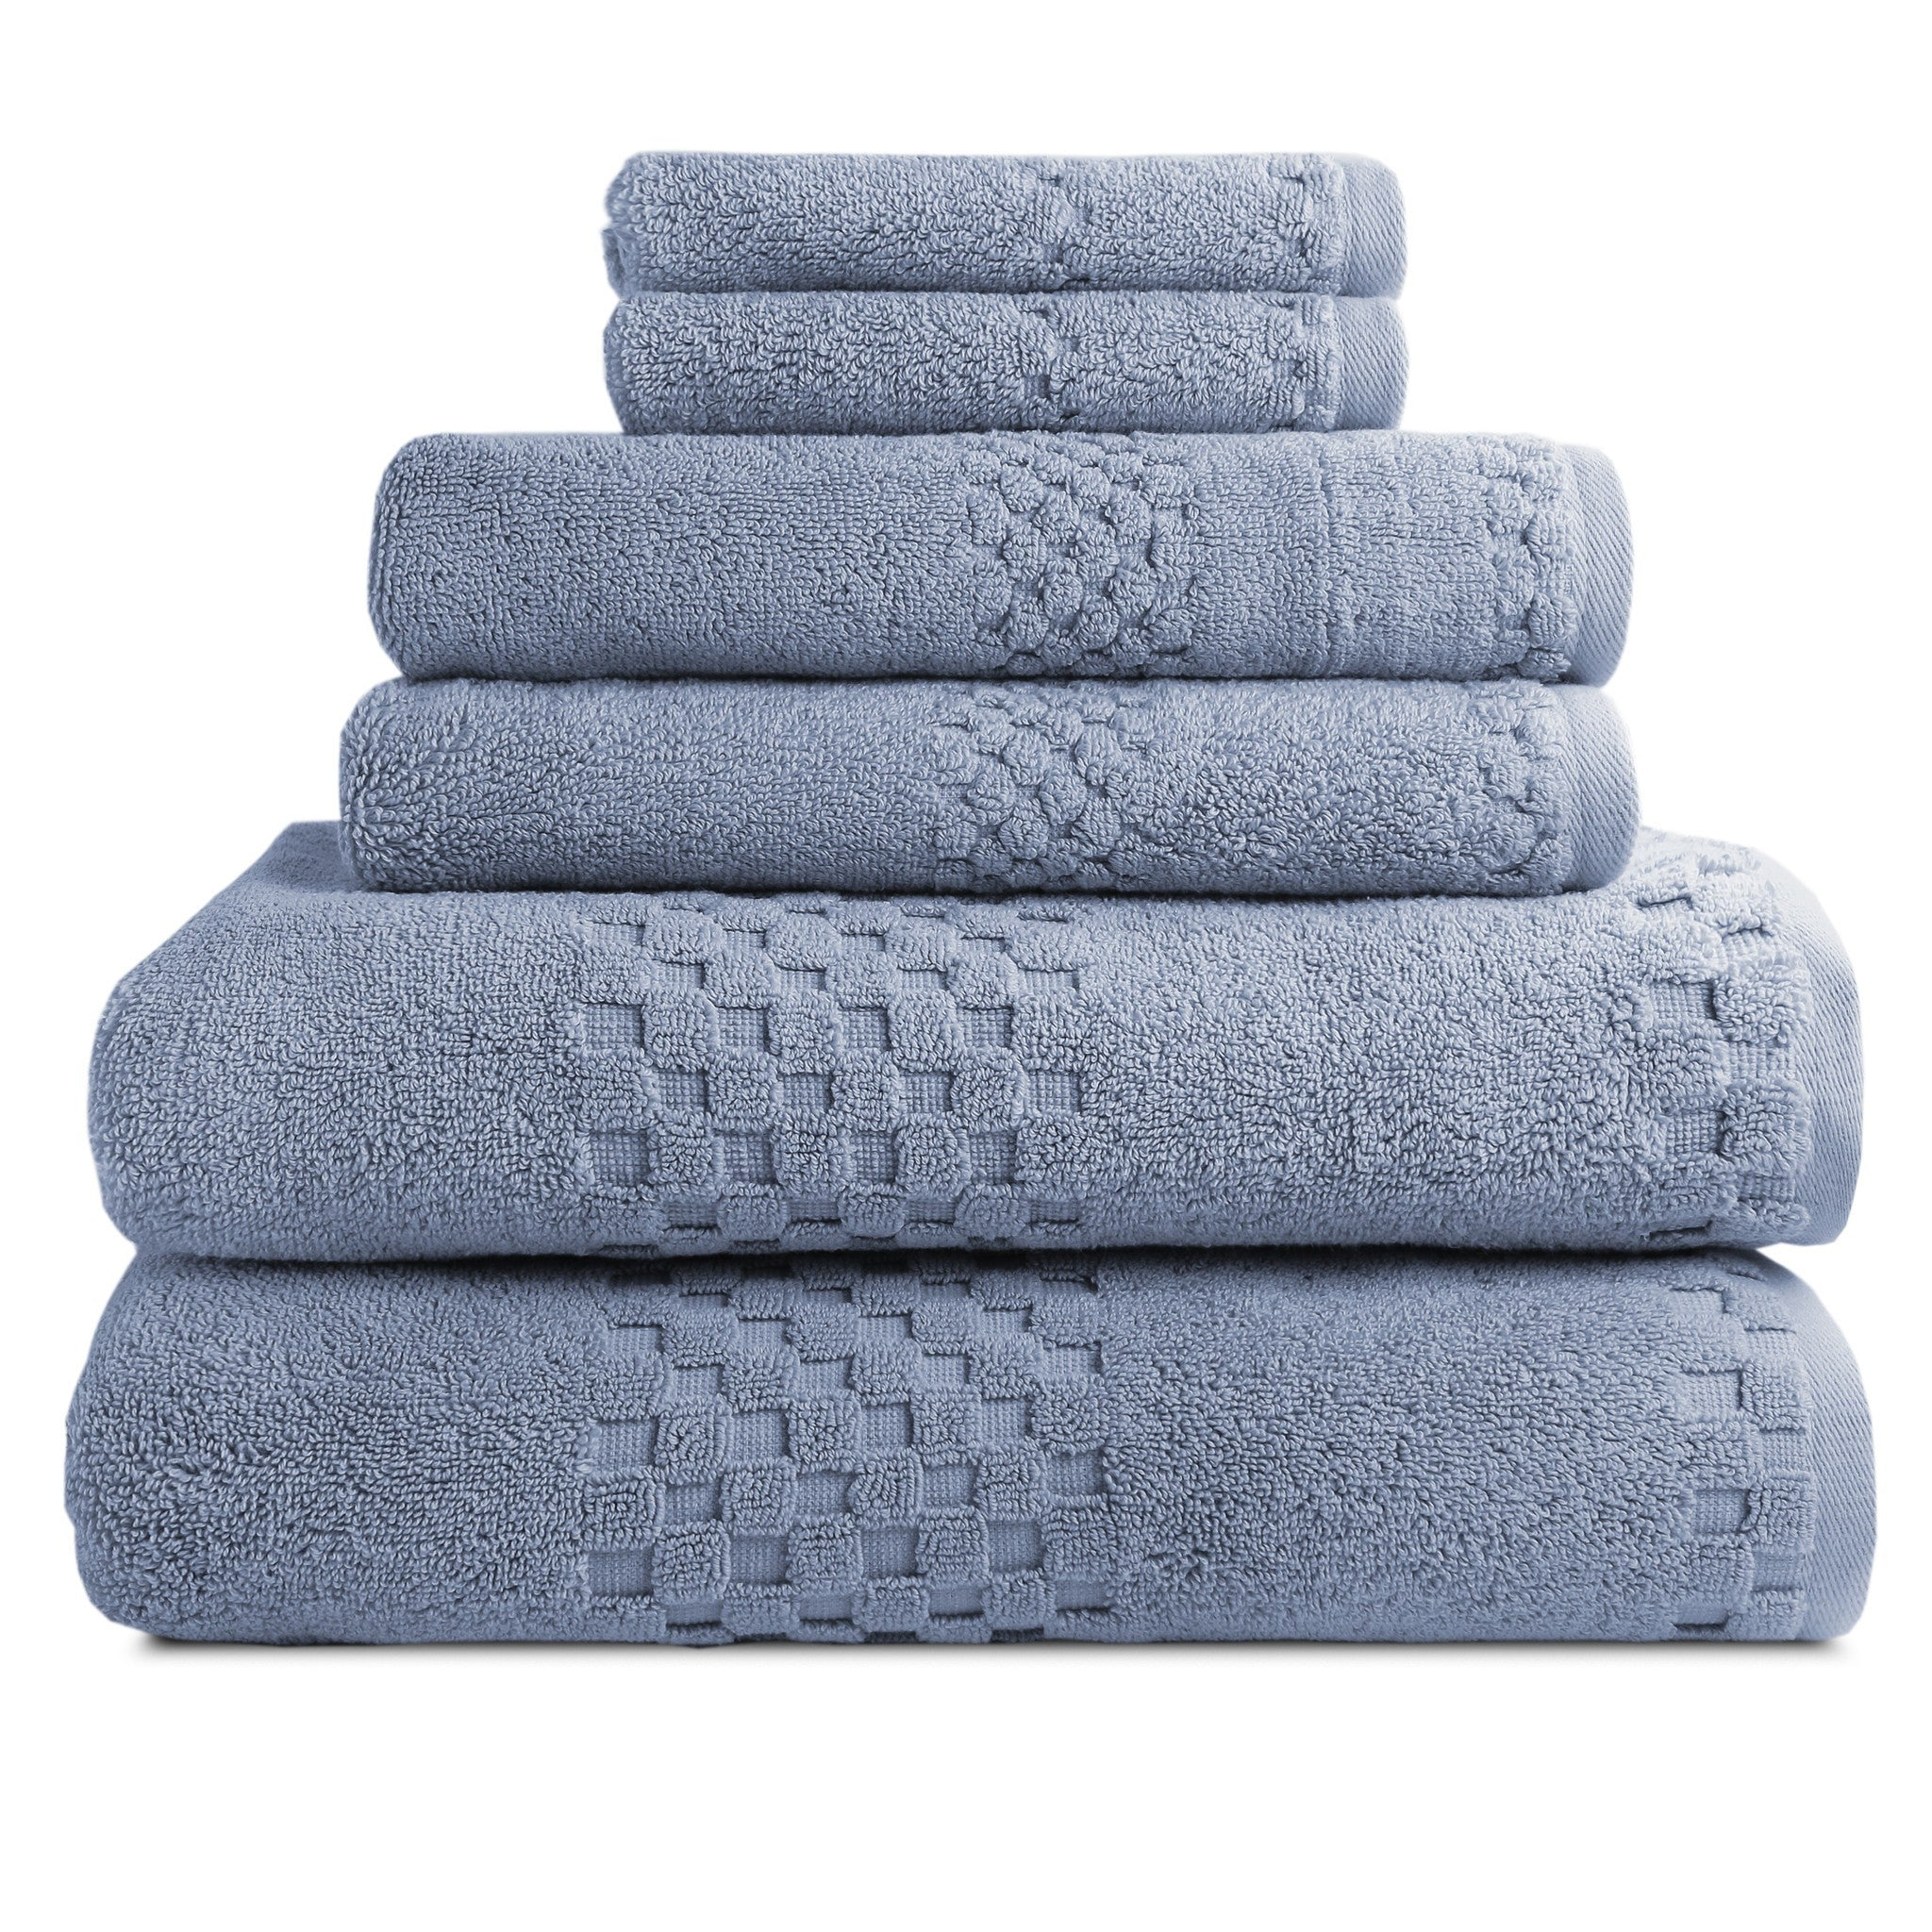 Home, Bathroom, Bath Towels - Beverly Hills Luxury Hotel Resort Bath Towels - Sets Of 6